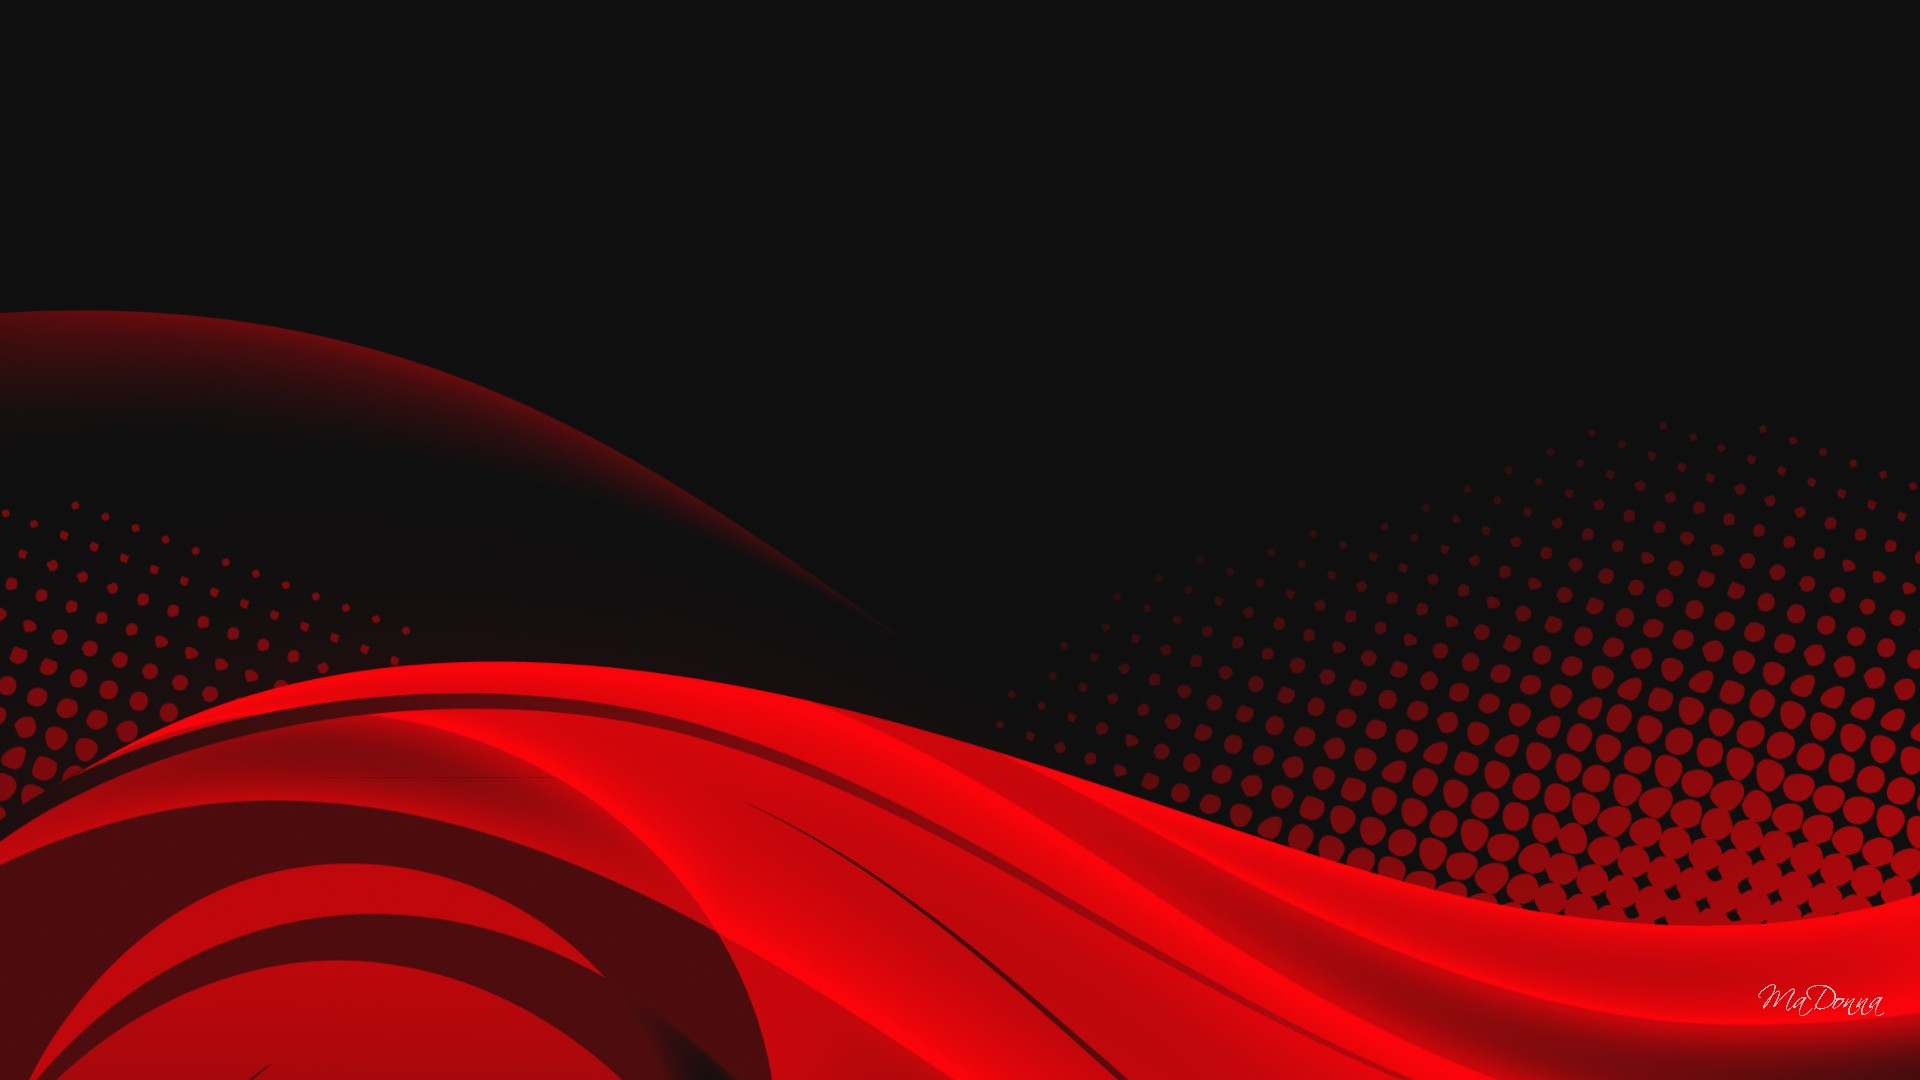 Black And Red >> Black And Red Backgrounds Sf Wallpaper